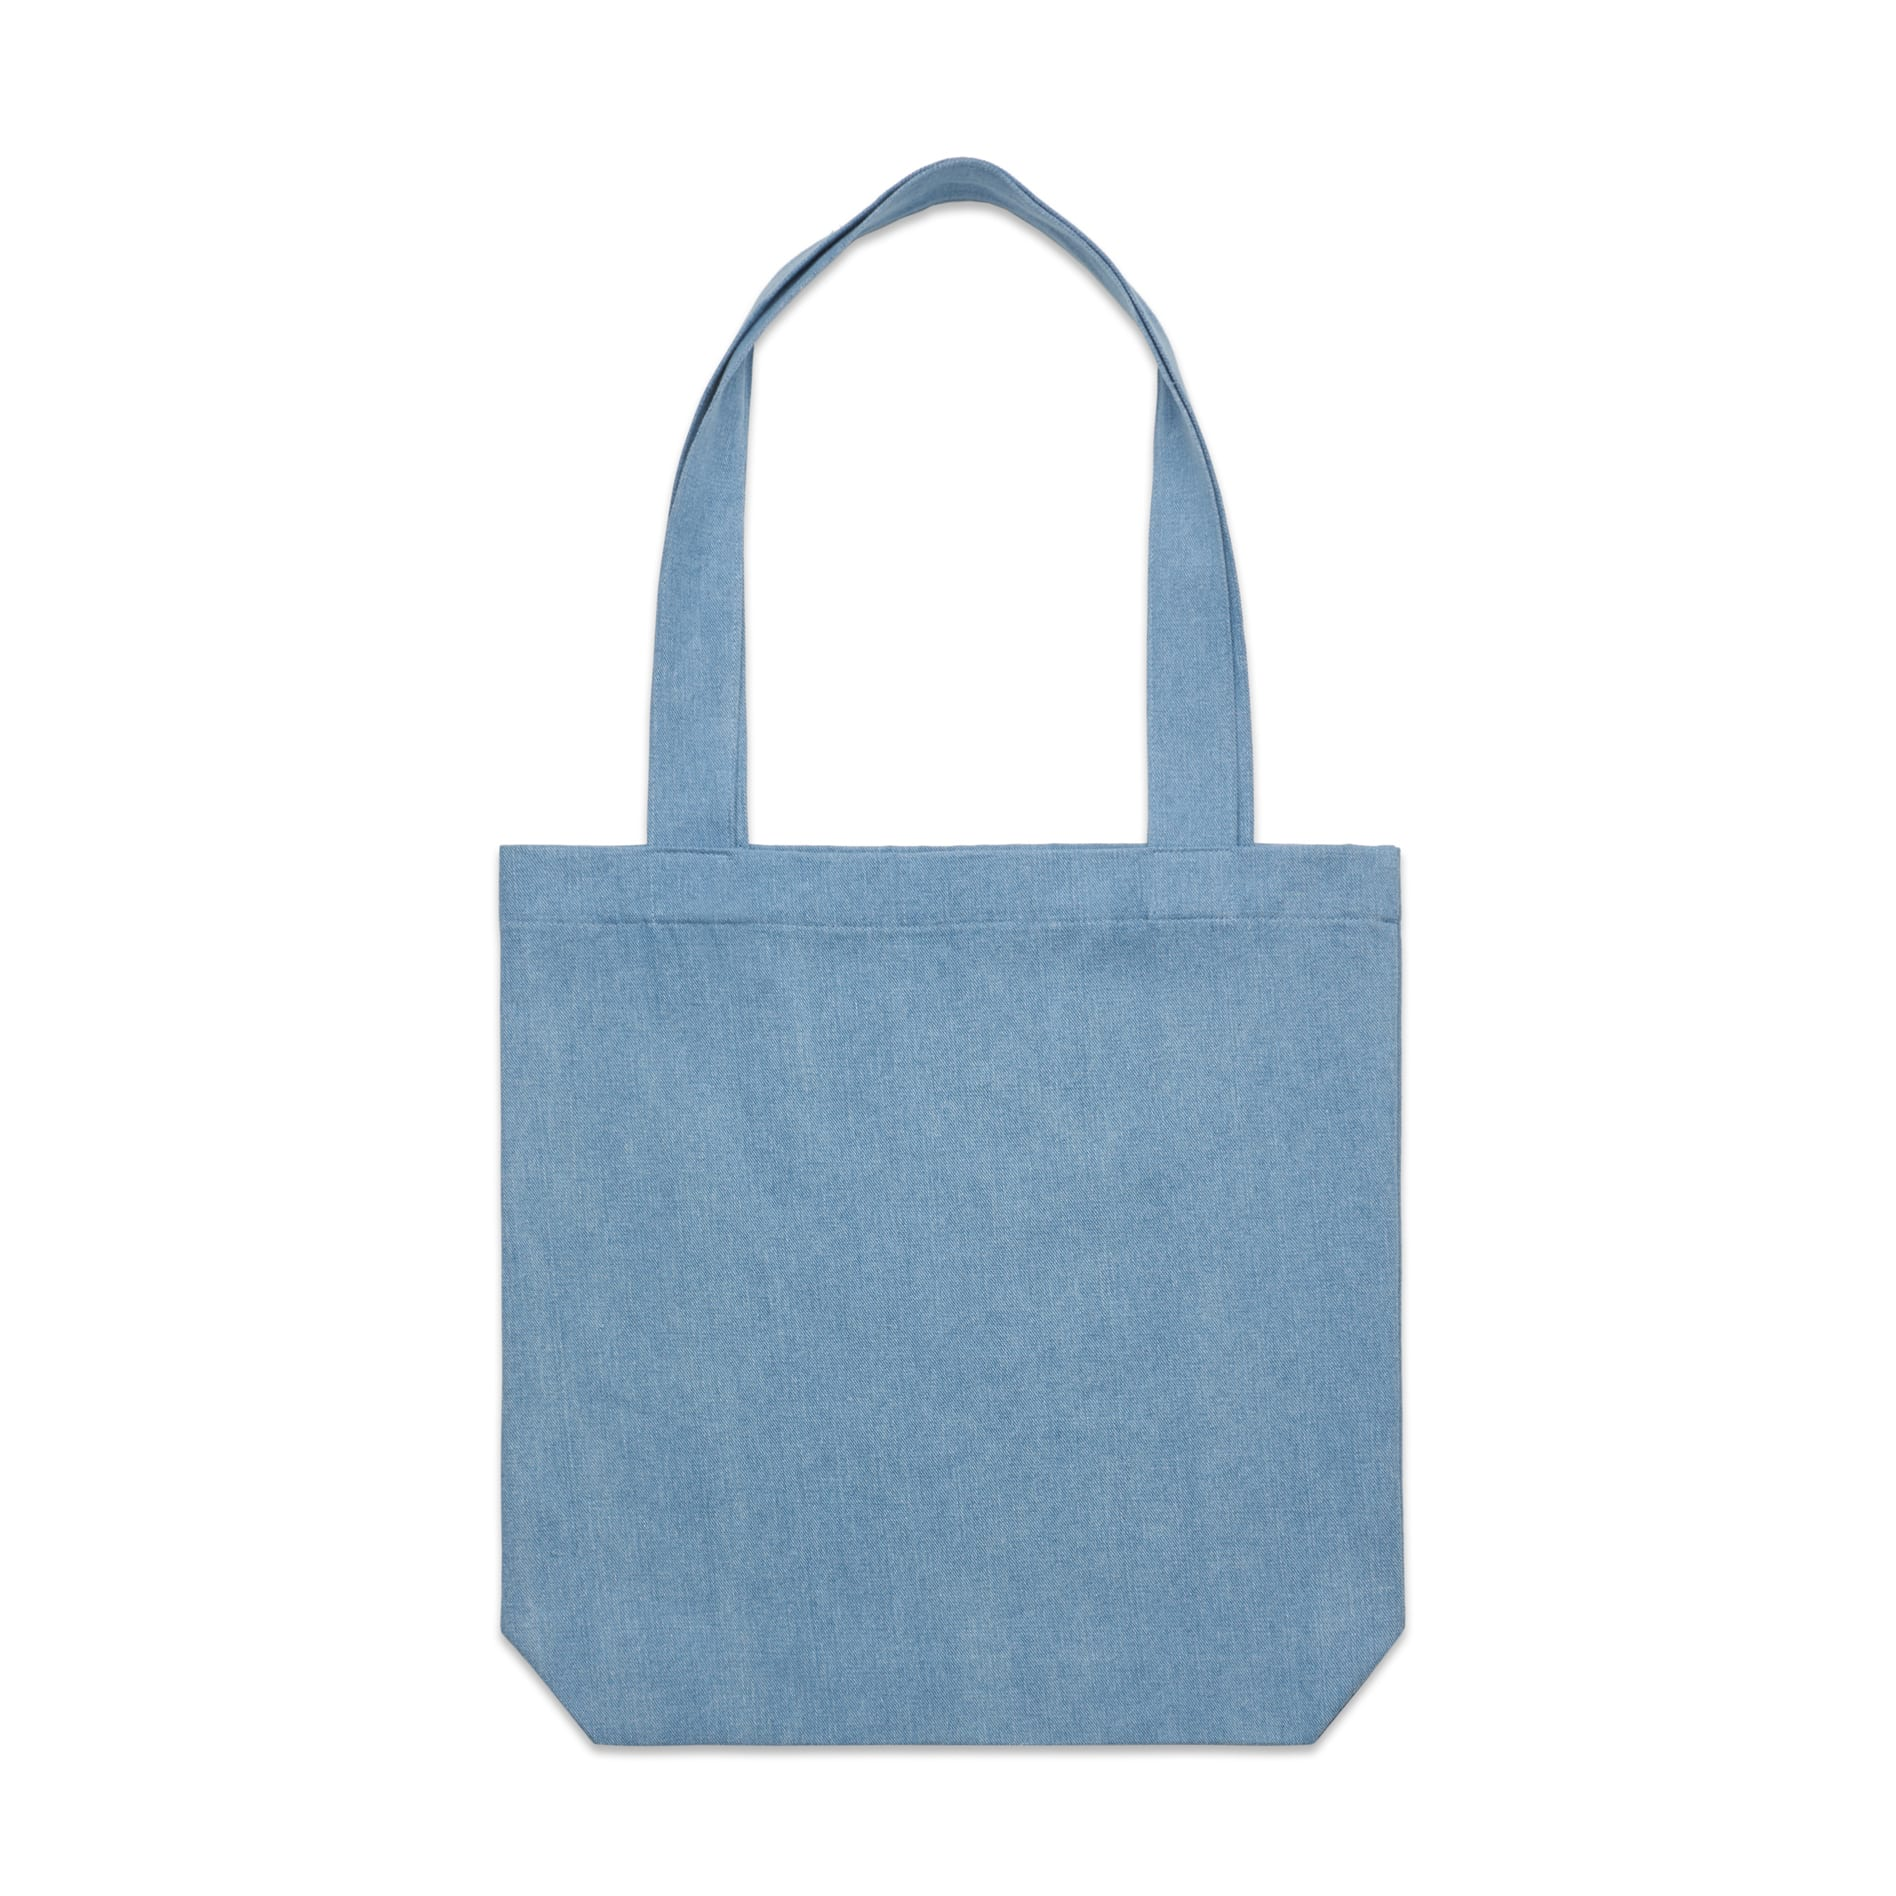 AS 1012 Denim Carrie Tote